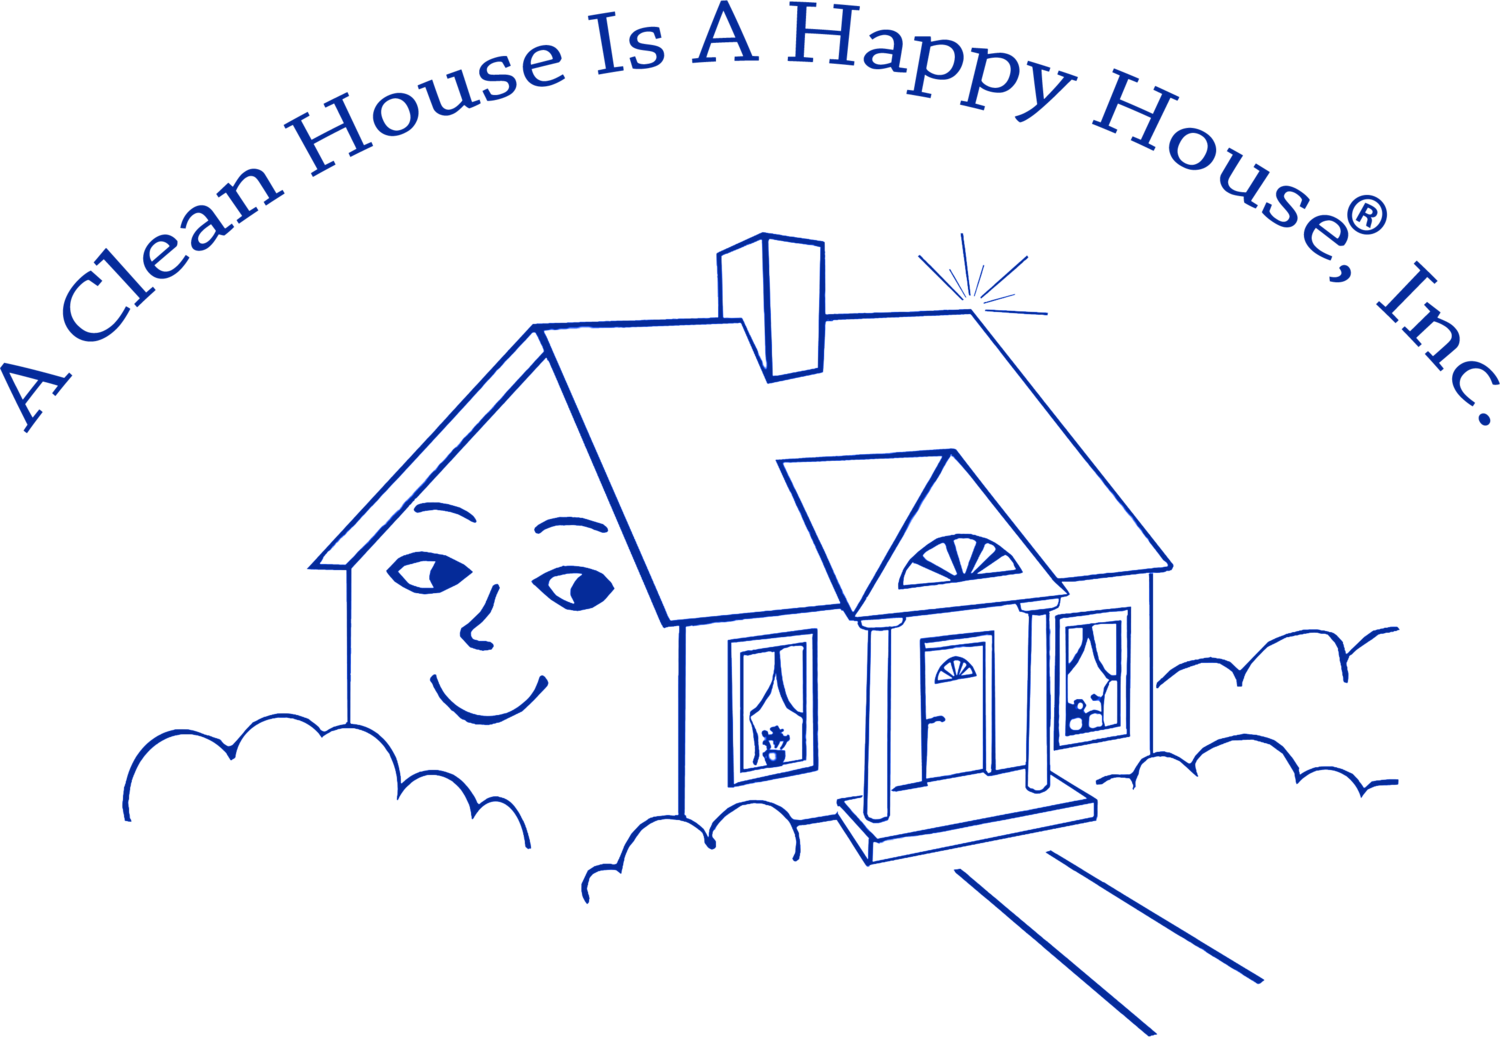 A Clean House Is A Happy House, Inc.